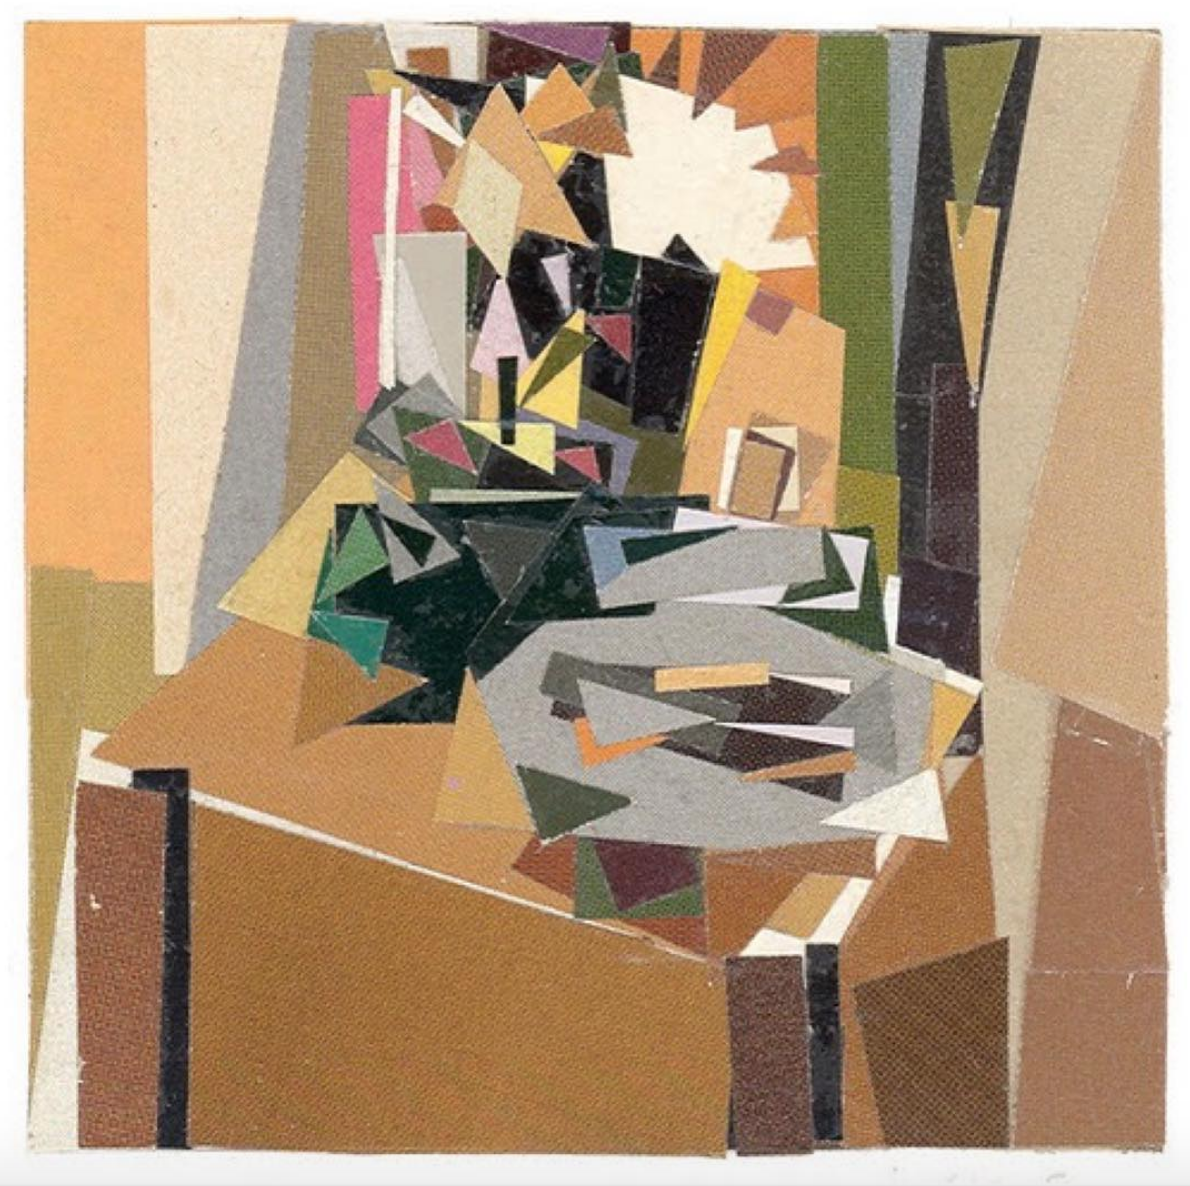 After Artist Collages 1997-2018 Fishbowl, Flowers on Crate (after Braque). 2009. paper collage.